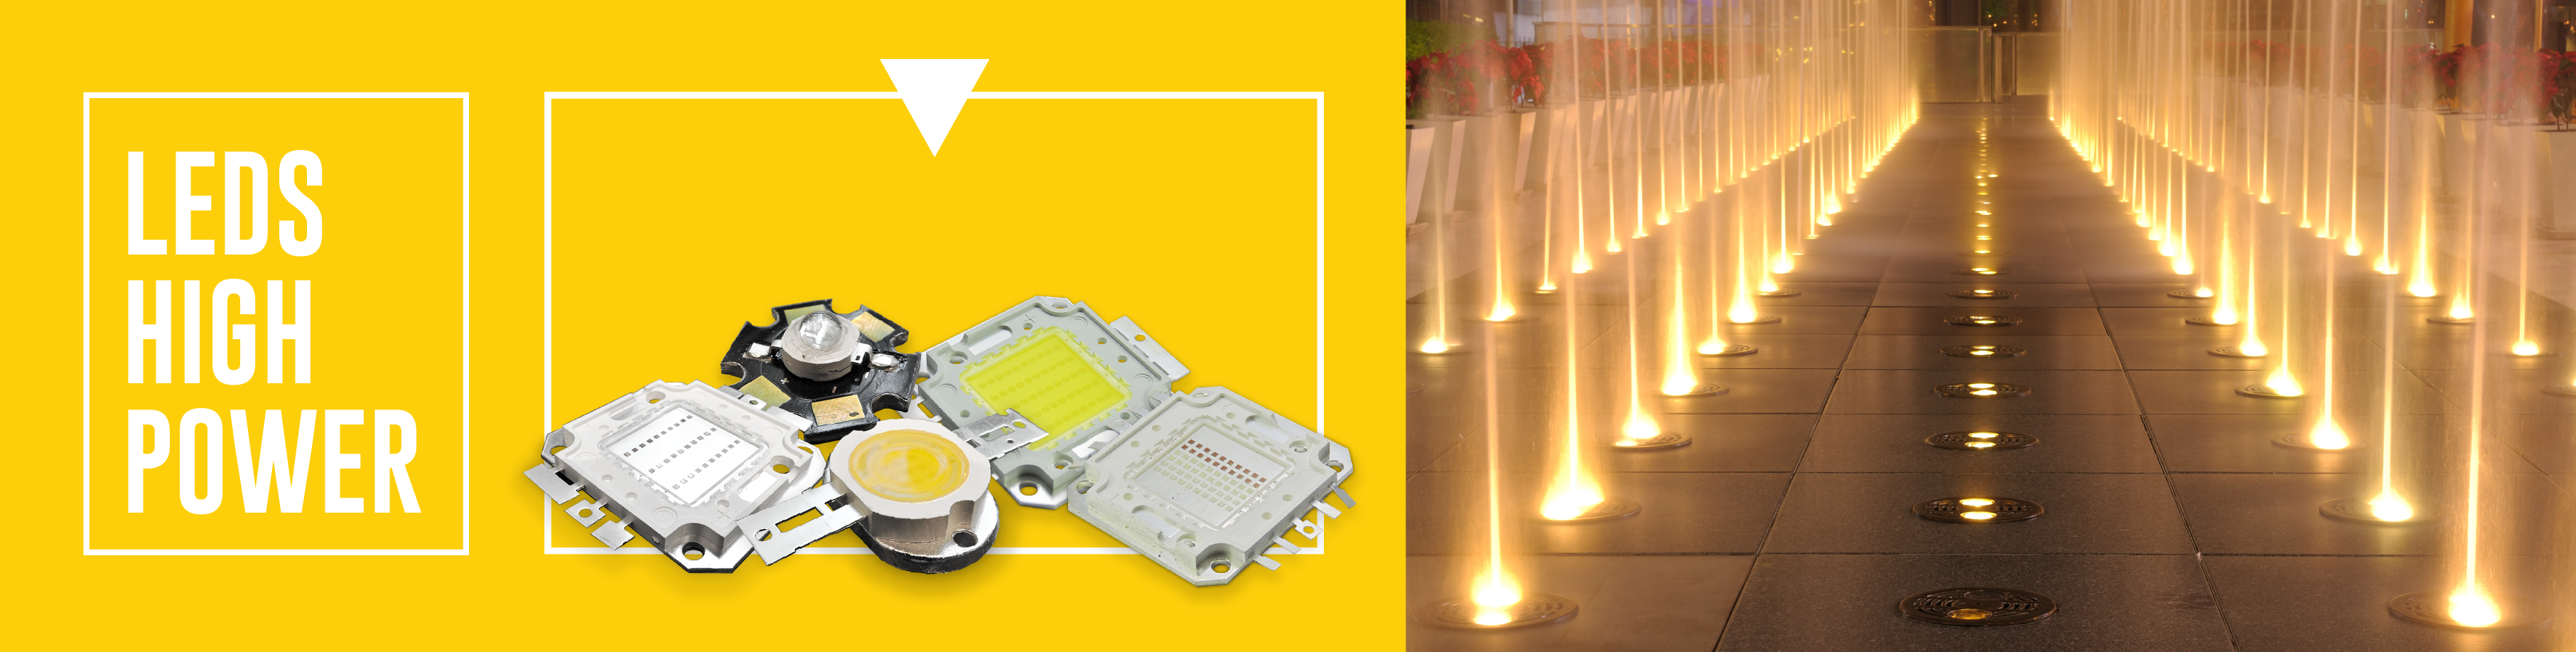 LEDs High Power - Alta potencia